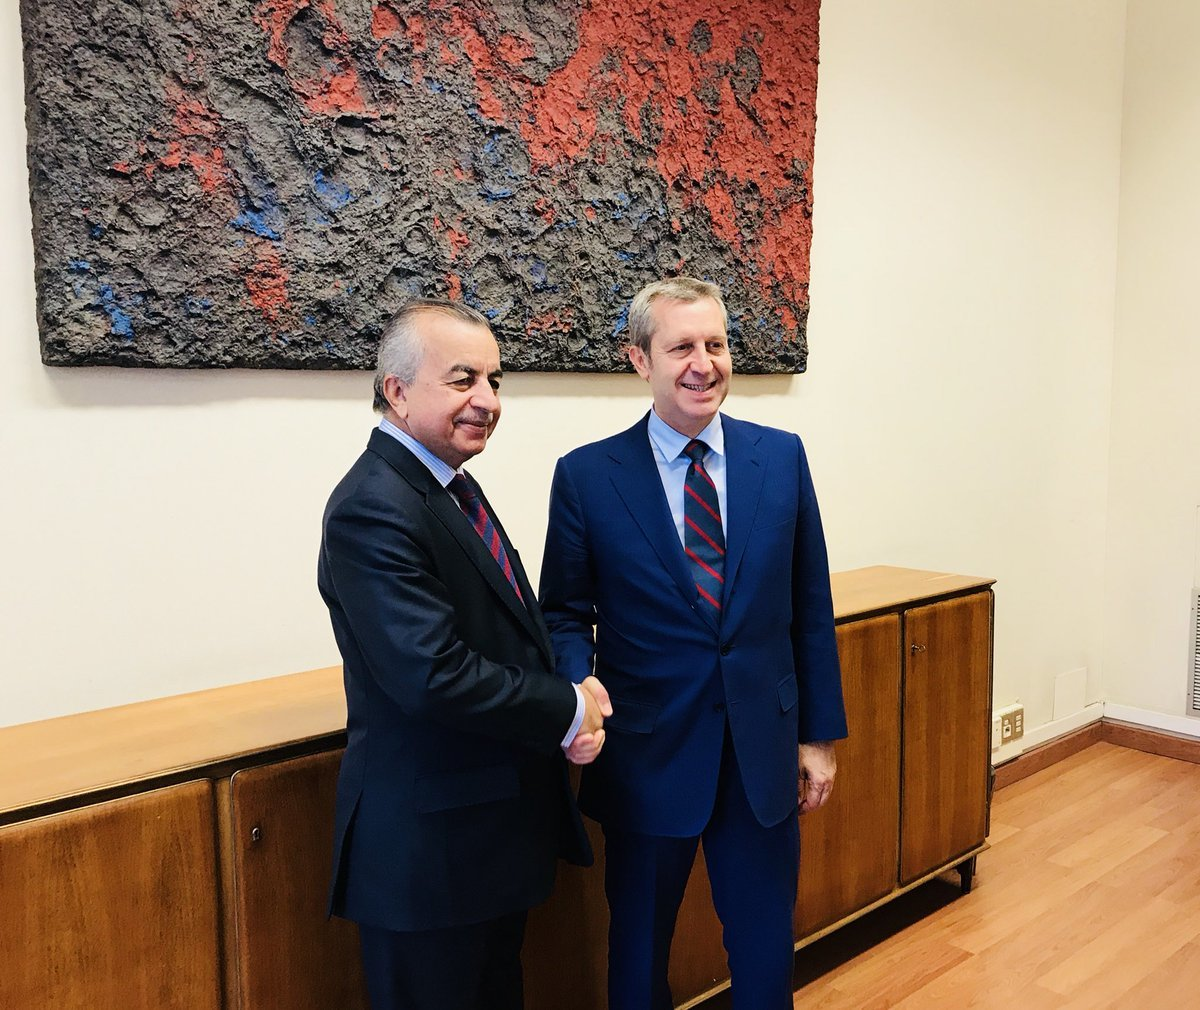 SRSG Tanin meets with Undersecretary of State of Italy | UNMIK